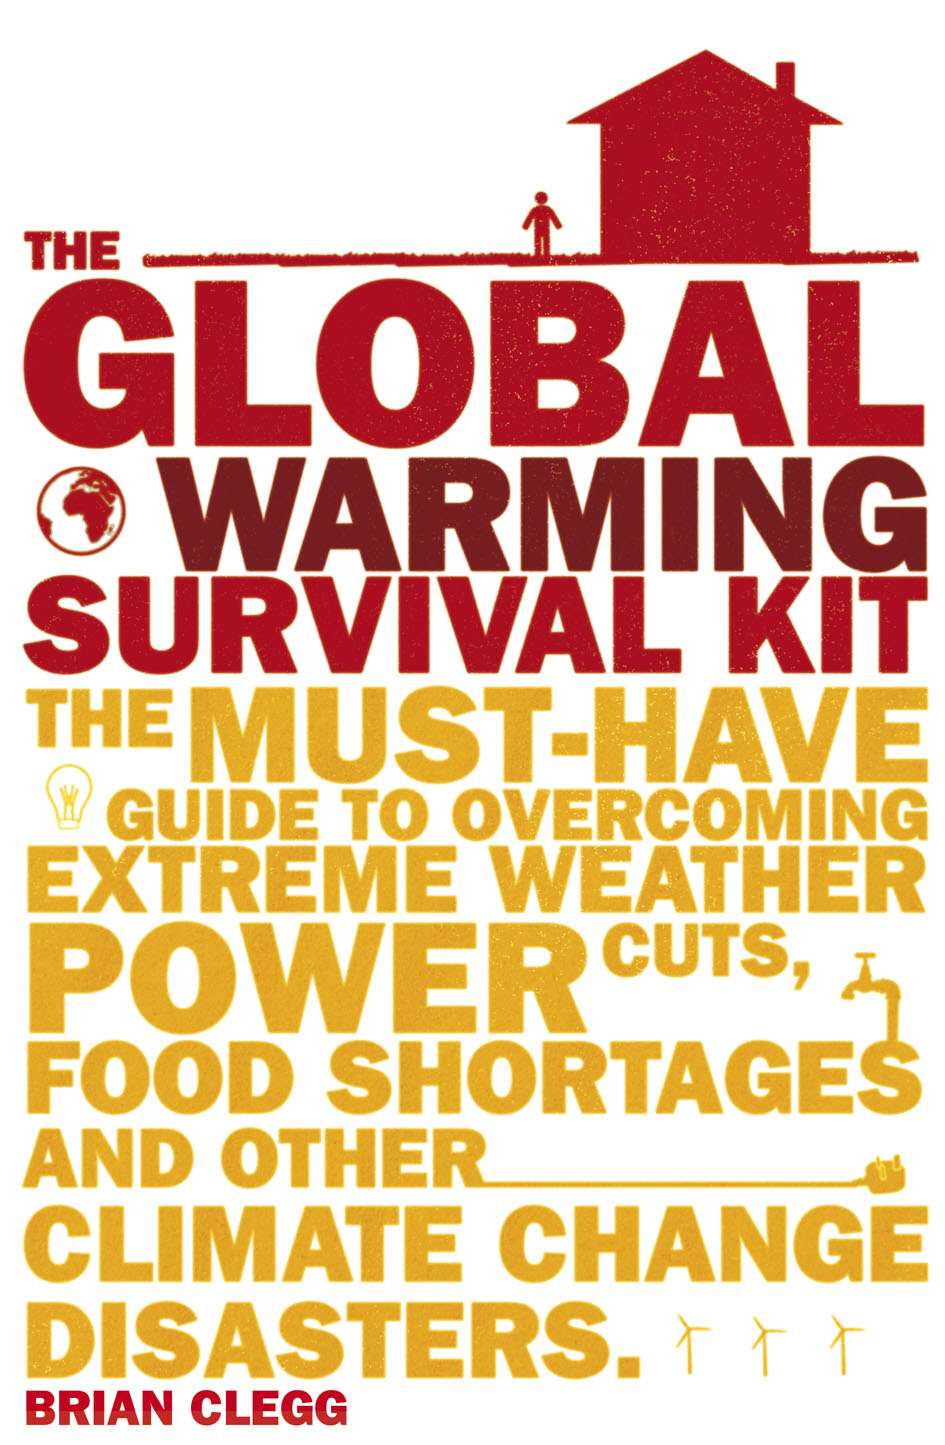 The Global Warming Survival Kit The Must-have Guide To Overcoming Extreme Weather,  Power Cuts,  Food Shortages And Other Climate Change Disasters